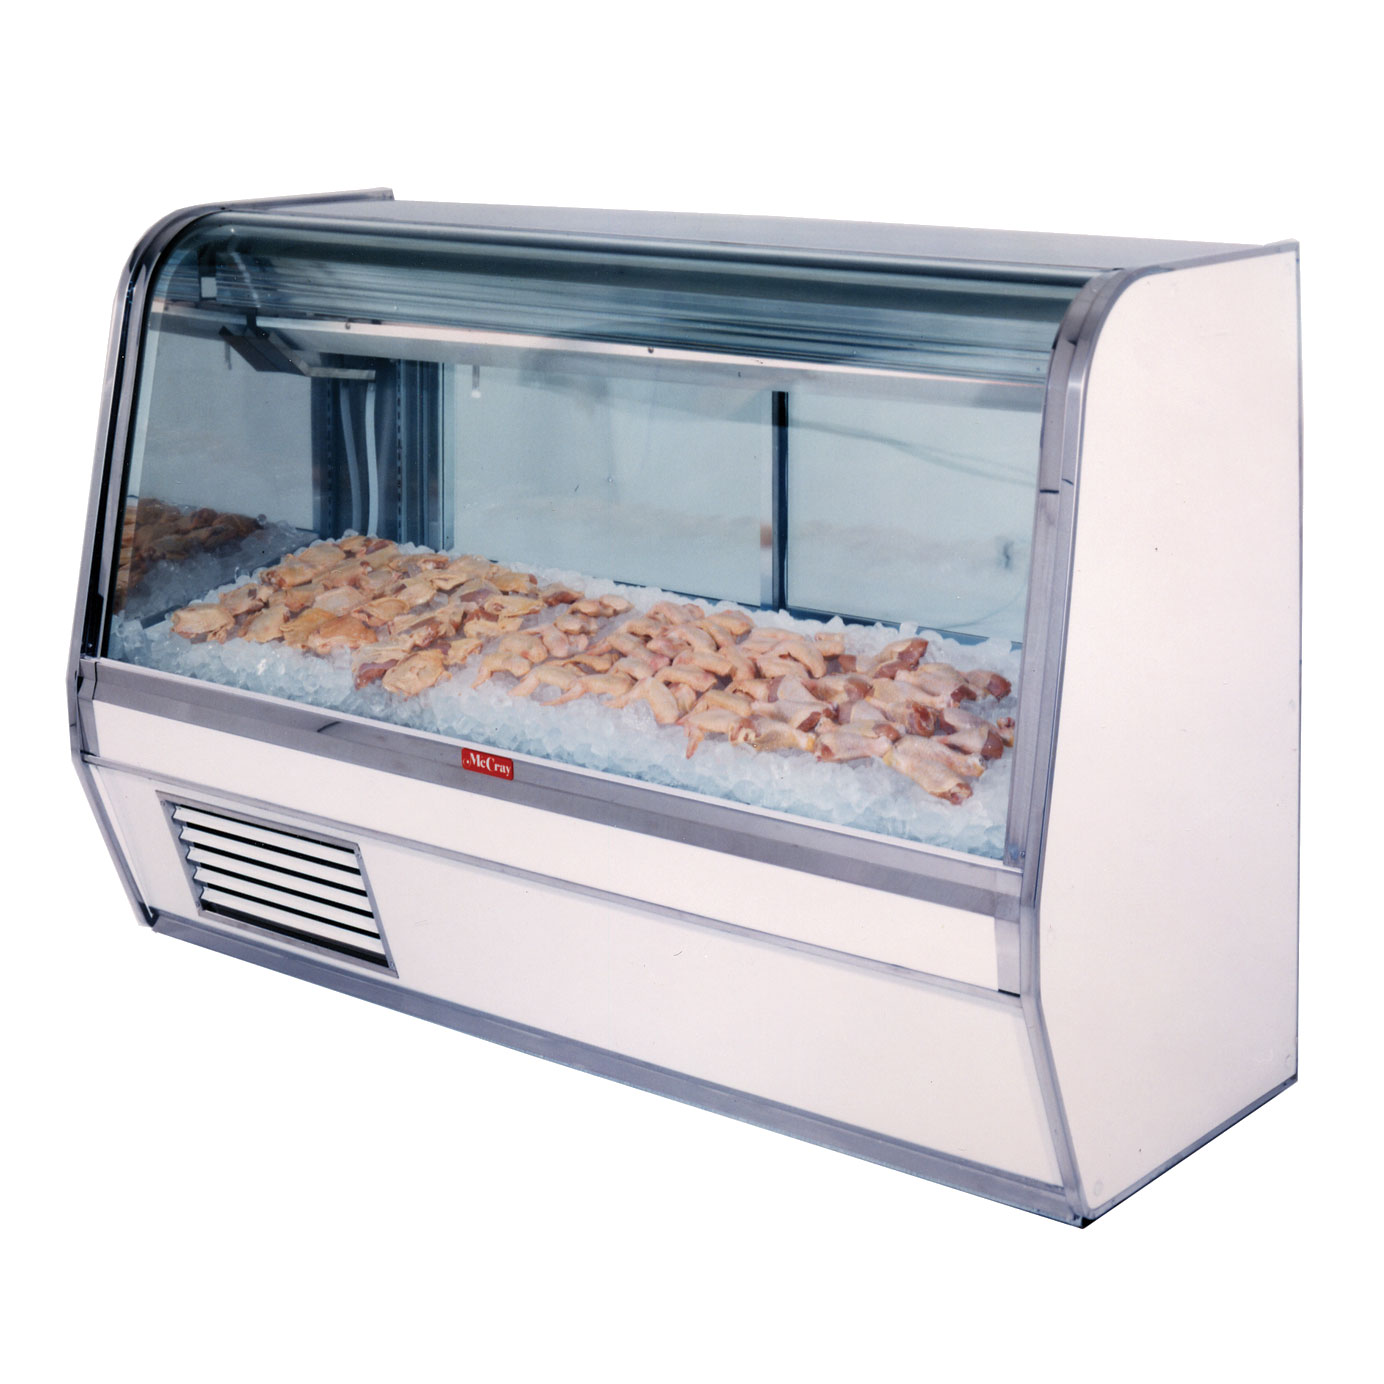 Howard-McCray R-CFS32E-4C-S-LED display case, deli seafood / poultry